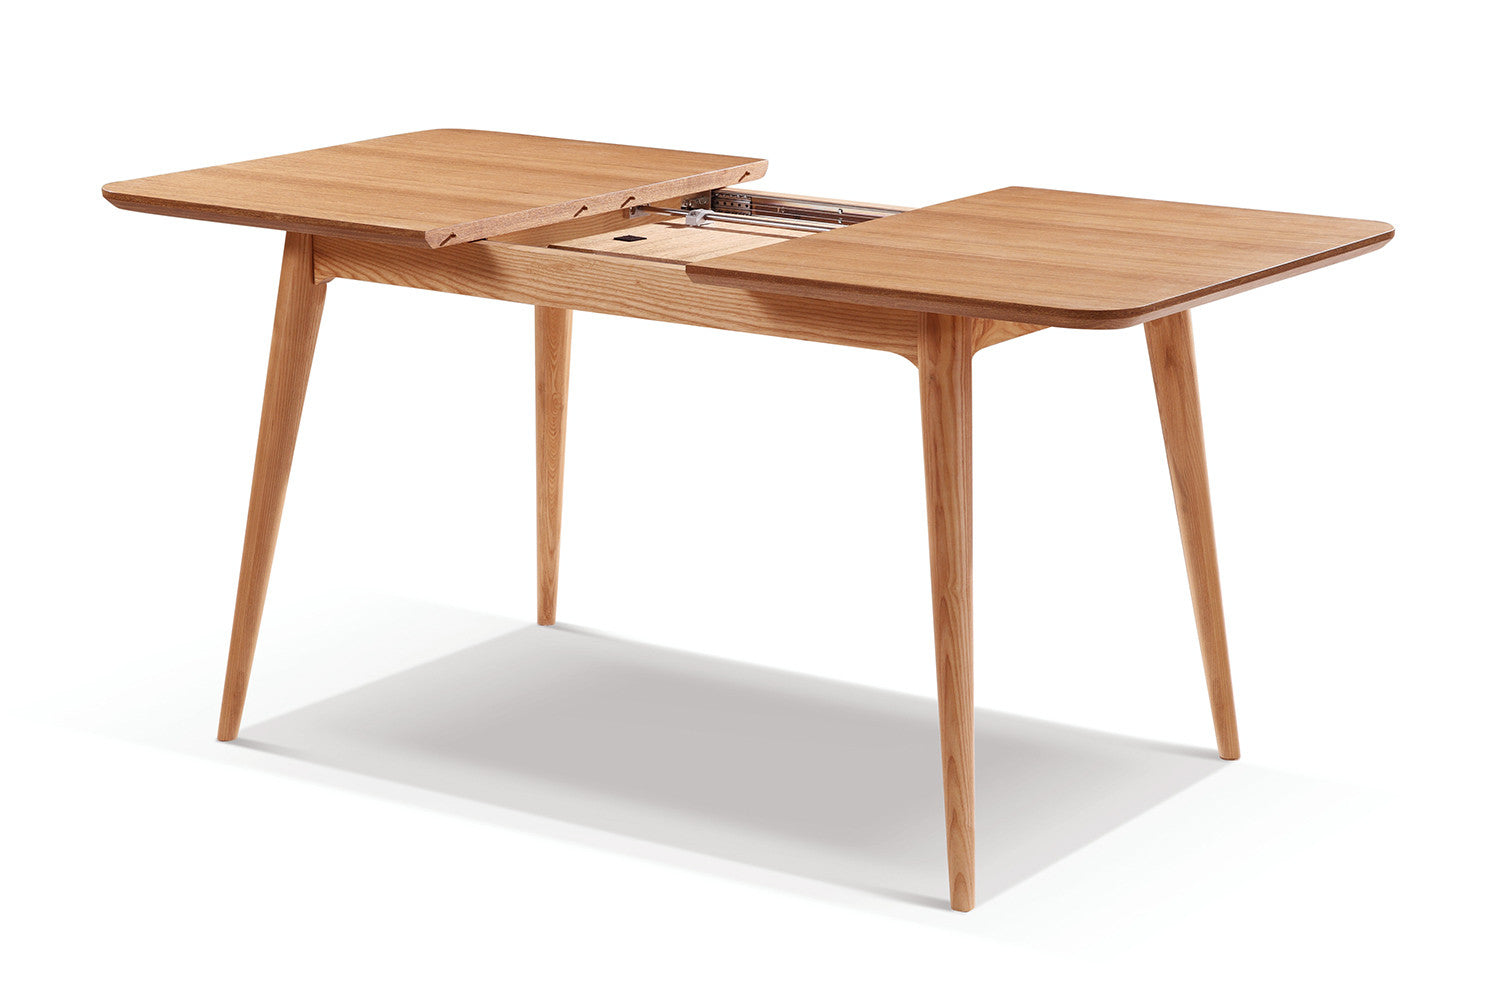 Table salle a manger extensible en bois maison design for Table de salle a manger evolutive